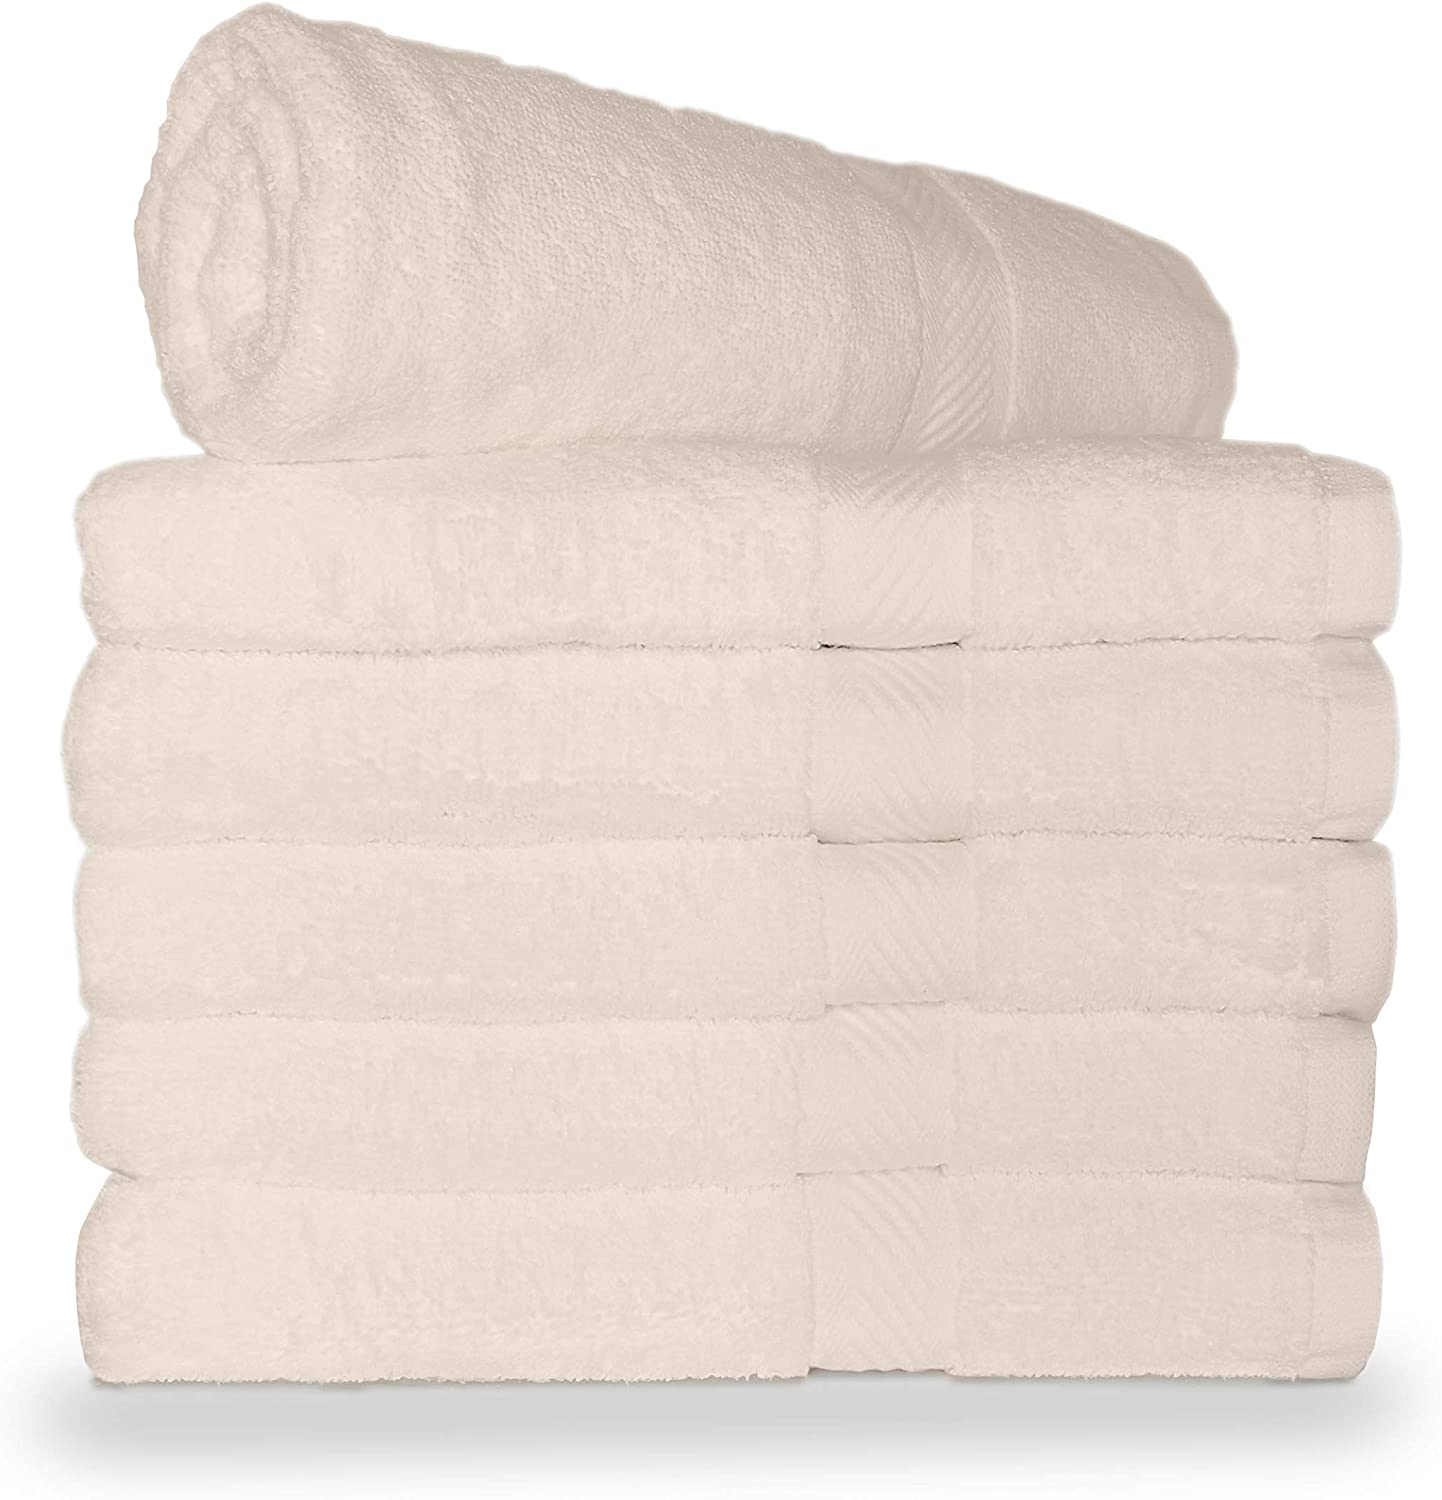 at 10.5 LBS pe dz Weight 100/% Cotton Spa Towels for Pool Gym DO not Settle for Less and Dorm Pack of 6 World Famous Royal Comfort Bath Towel 24x48 Burgundy